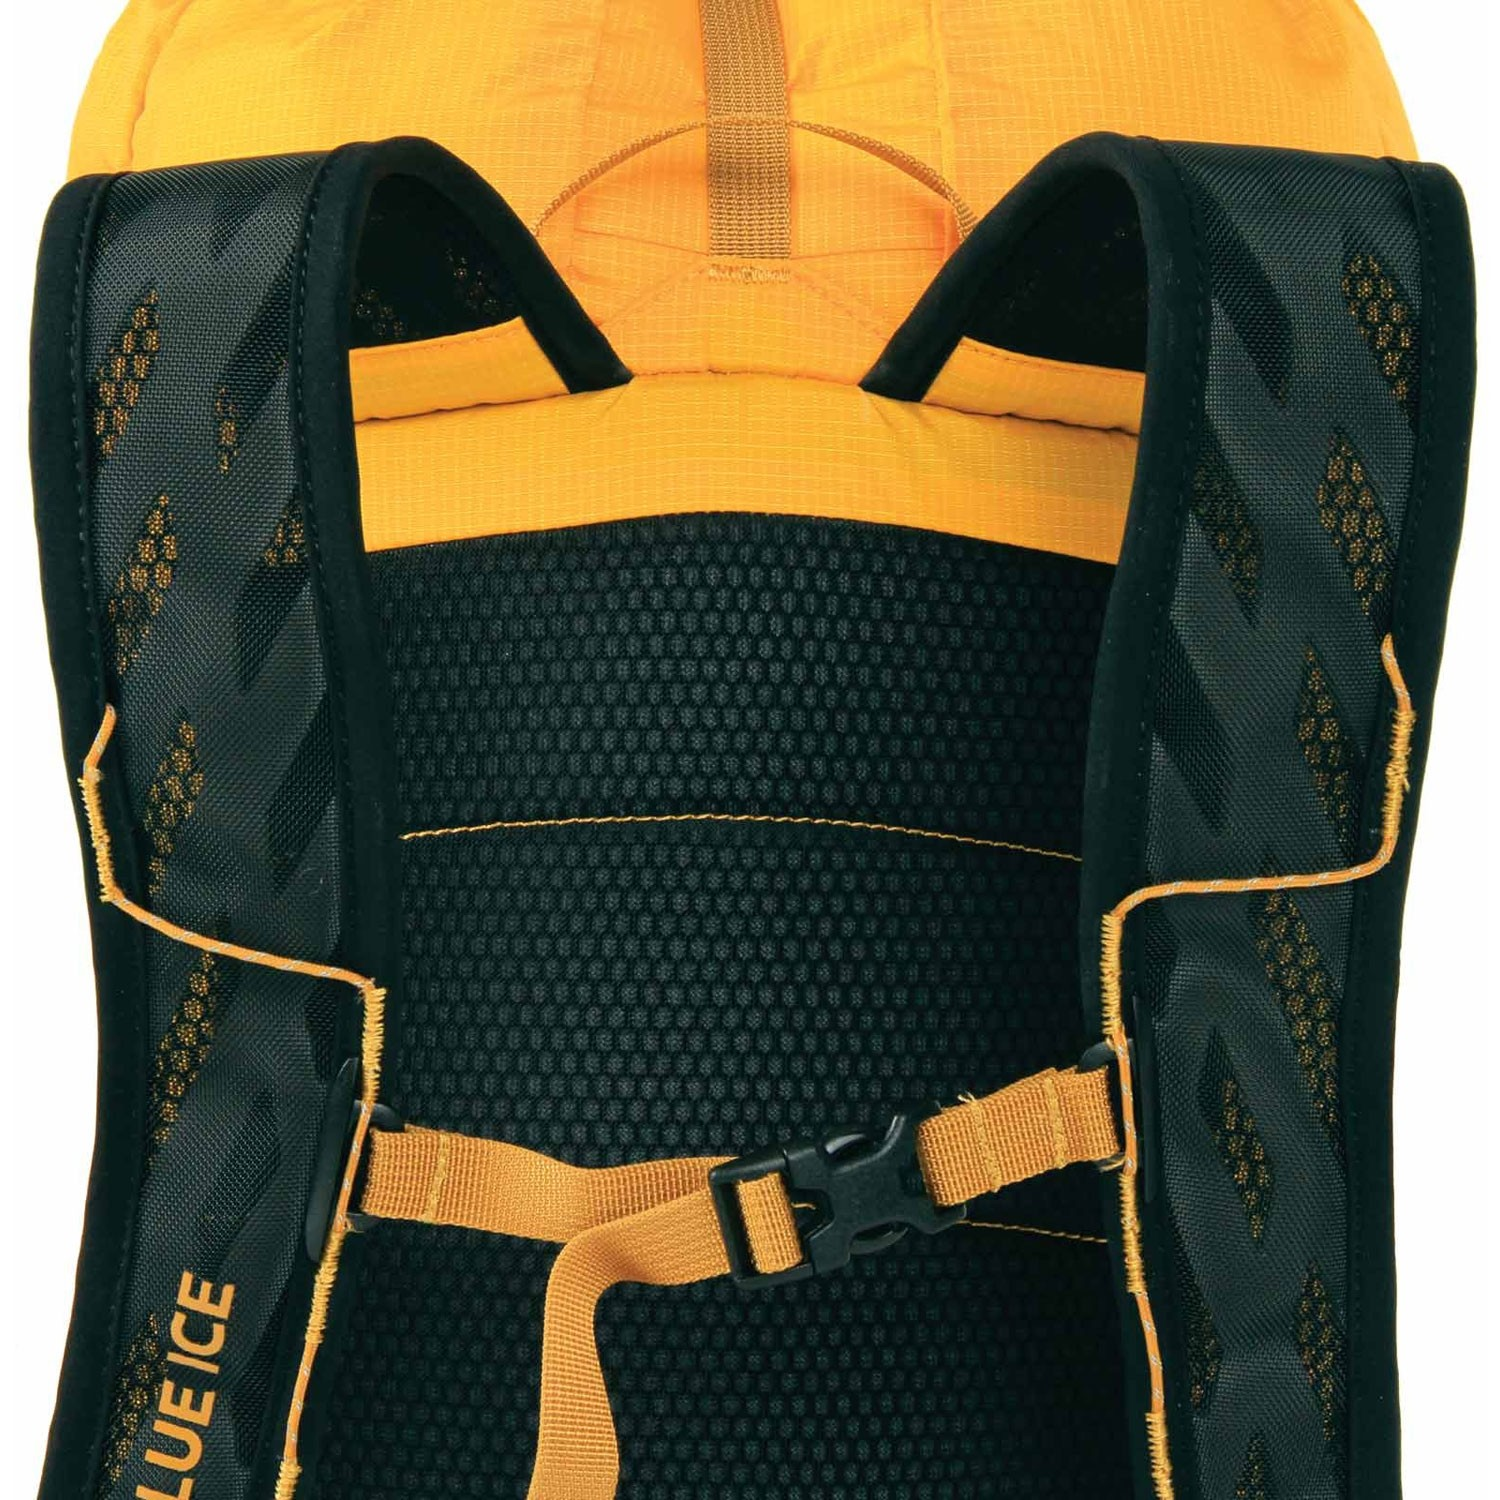 Blue Ice Dragonfly 25L Rucksack - Spectra Yellow - suspension